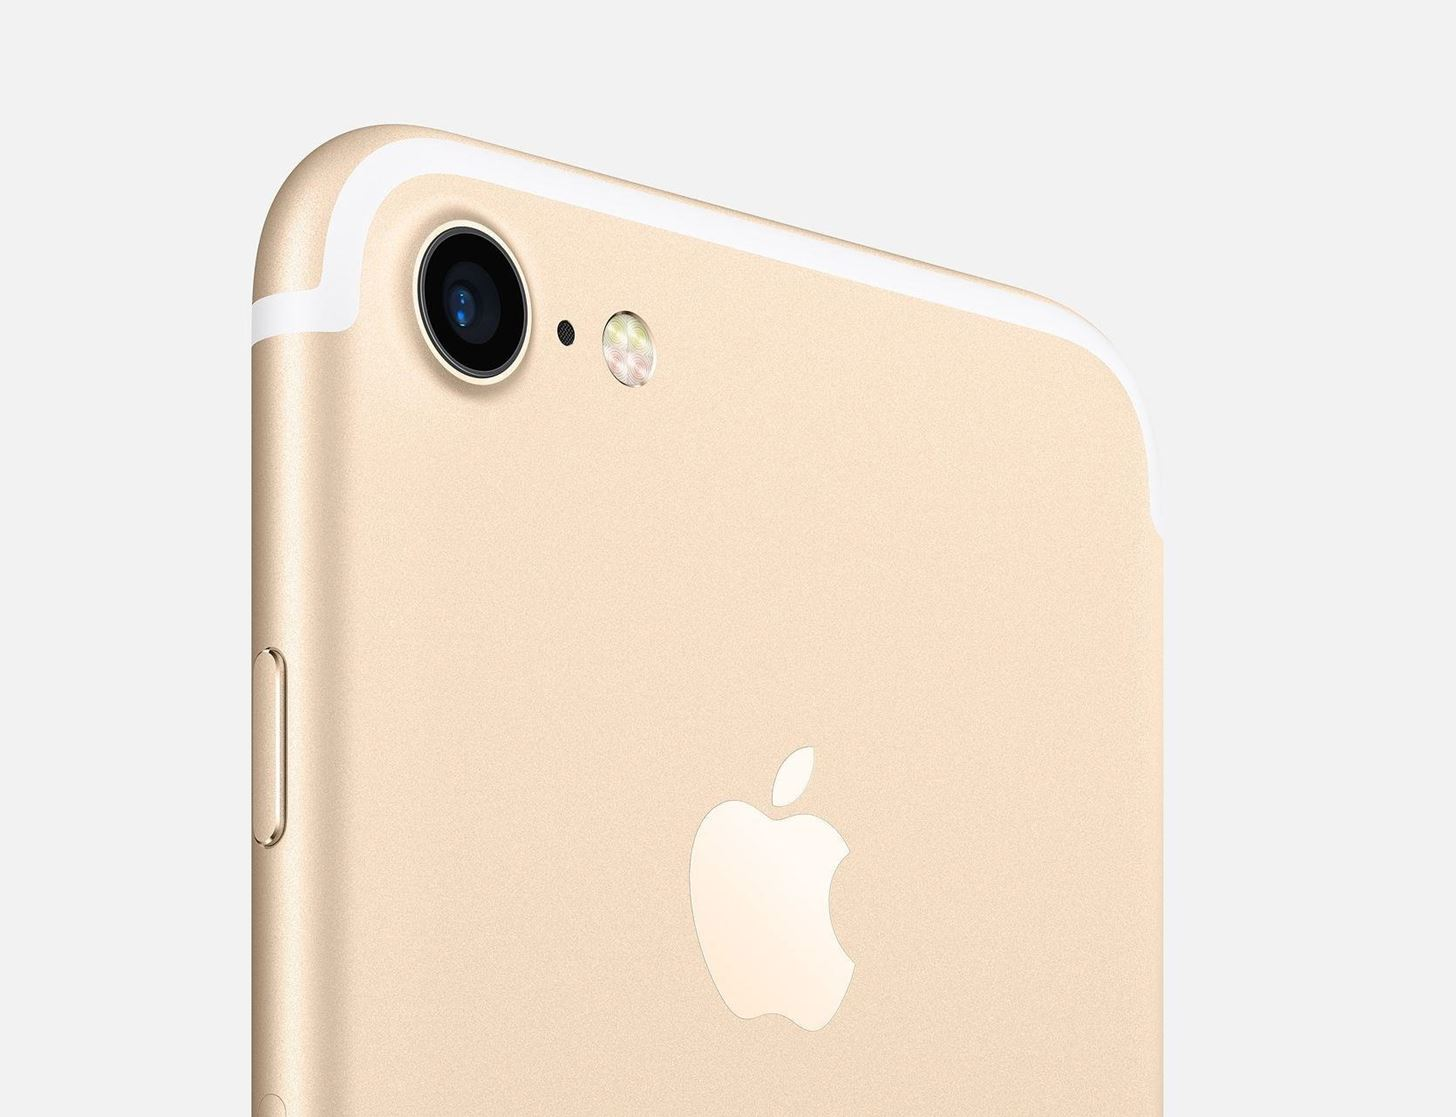 The iPhone 7 Just Became the Spiritual Successor to the iPhone SE